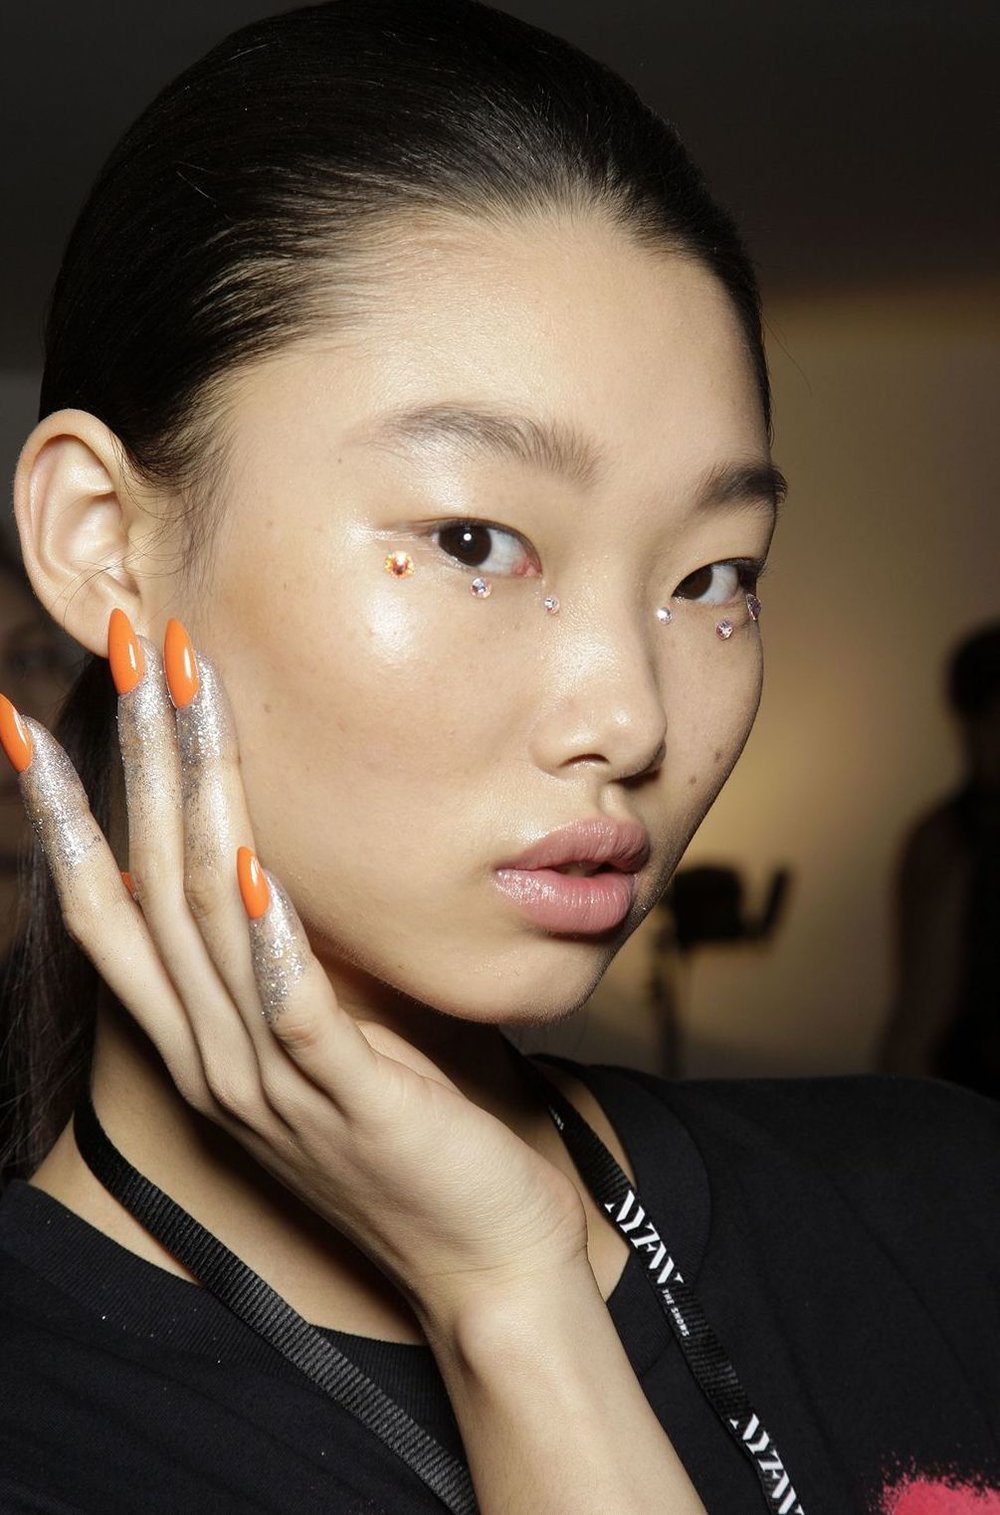 5 TOP NAIL TRENDS FOR SPRING - The Grown Up Edit  copy 2.jpg